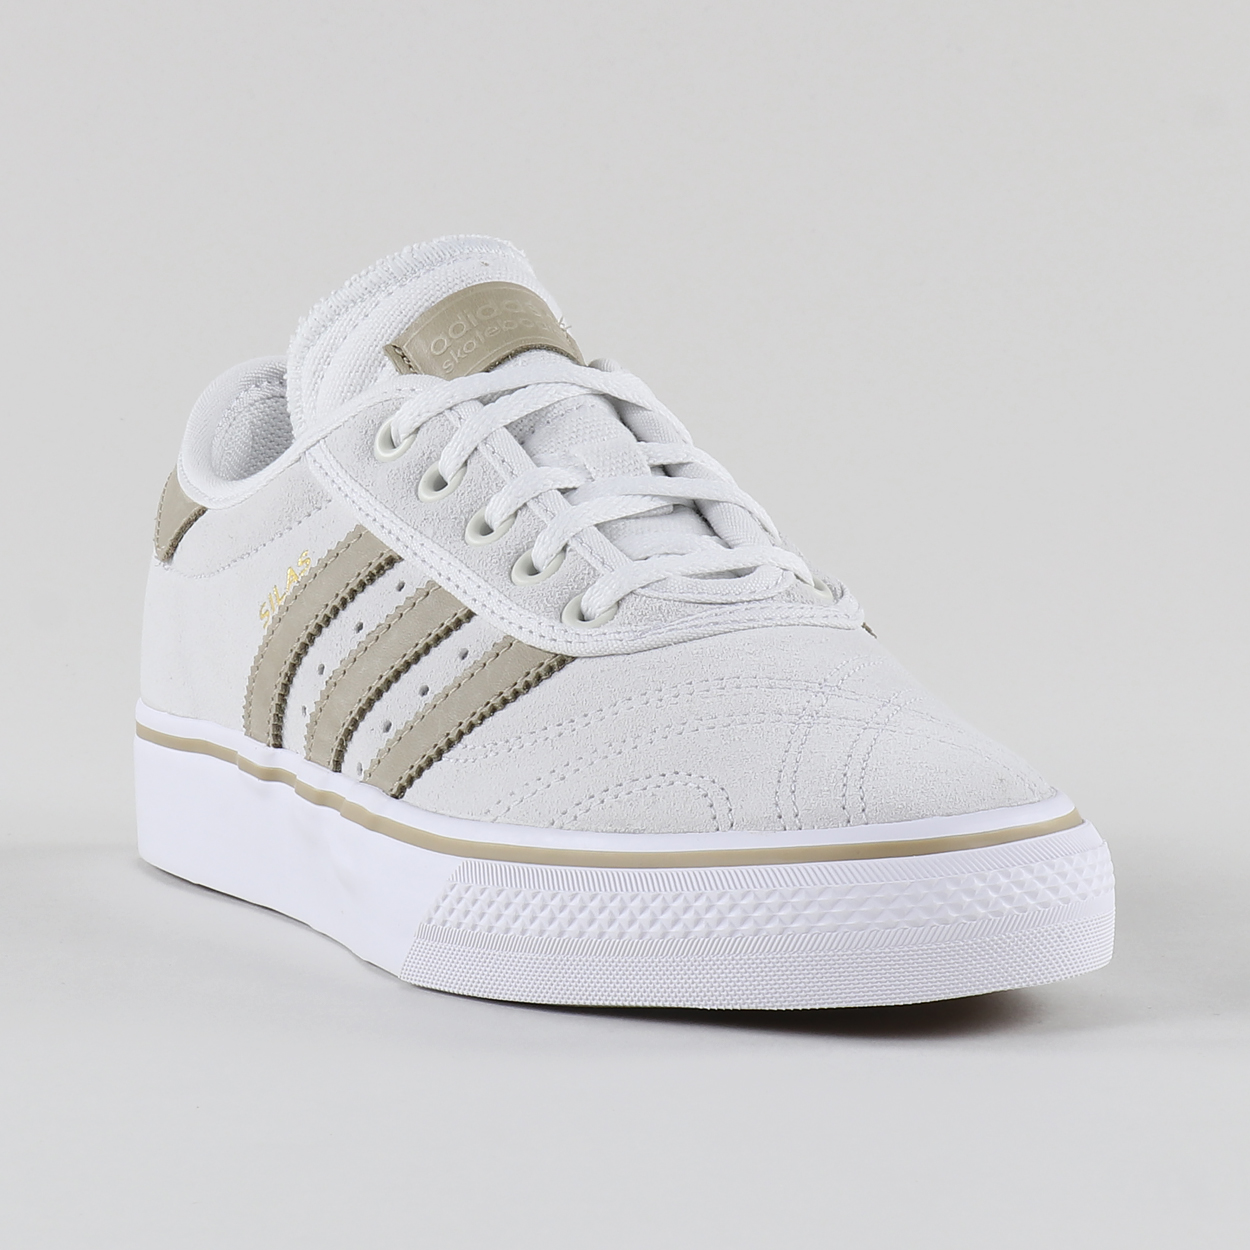 quality design 895a1 d5221 The legendary Adi Ease Premiere has been souped up and kitted out with  skateboarding tech such as a moulded EVA insole and a vulcanised rubber  outsole, ...